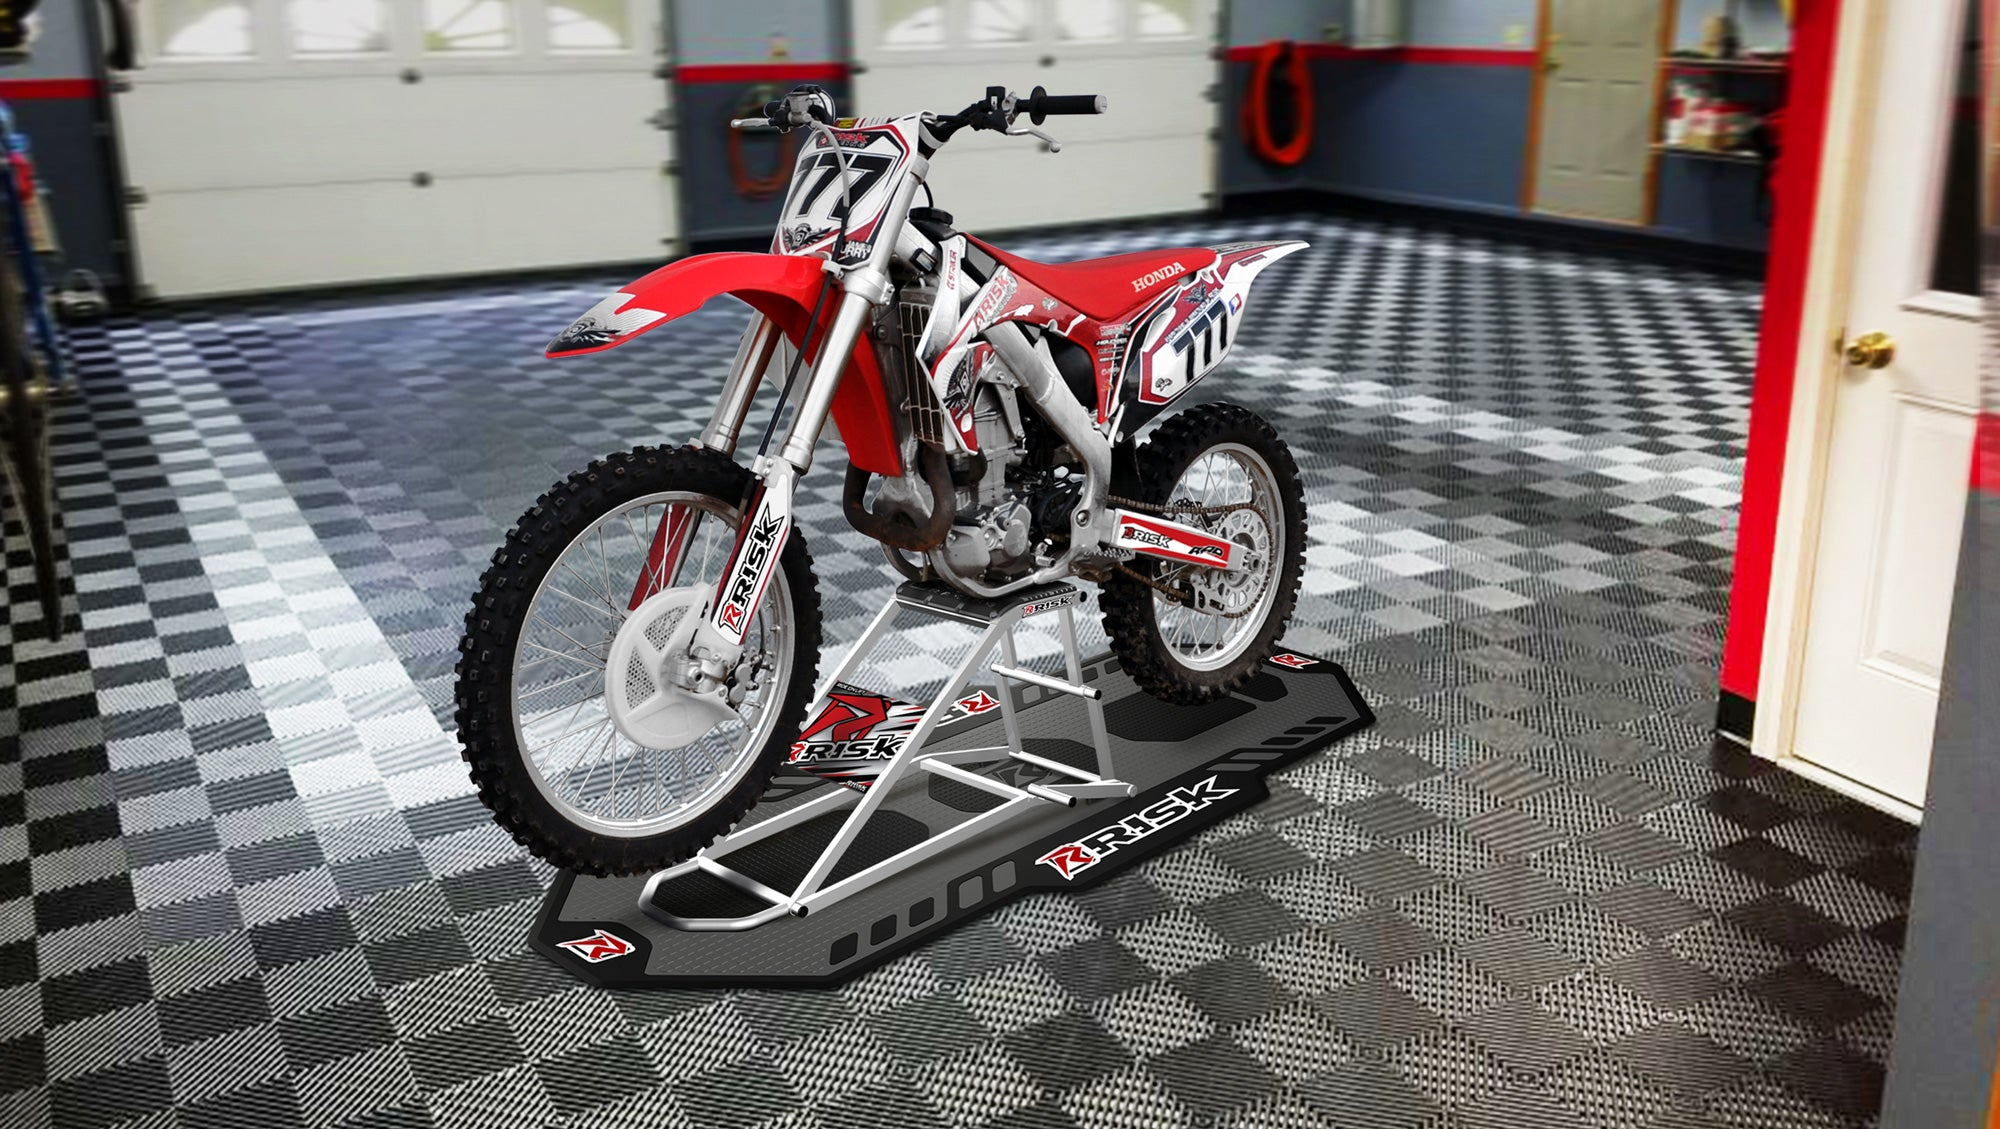 States MX NEW Black Alloy Motocross Dirt Bike Motorcycle Lift Stand